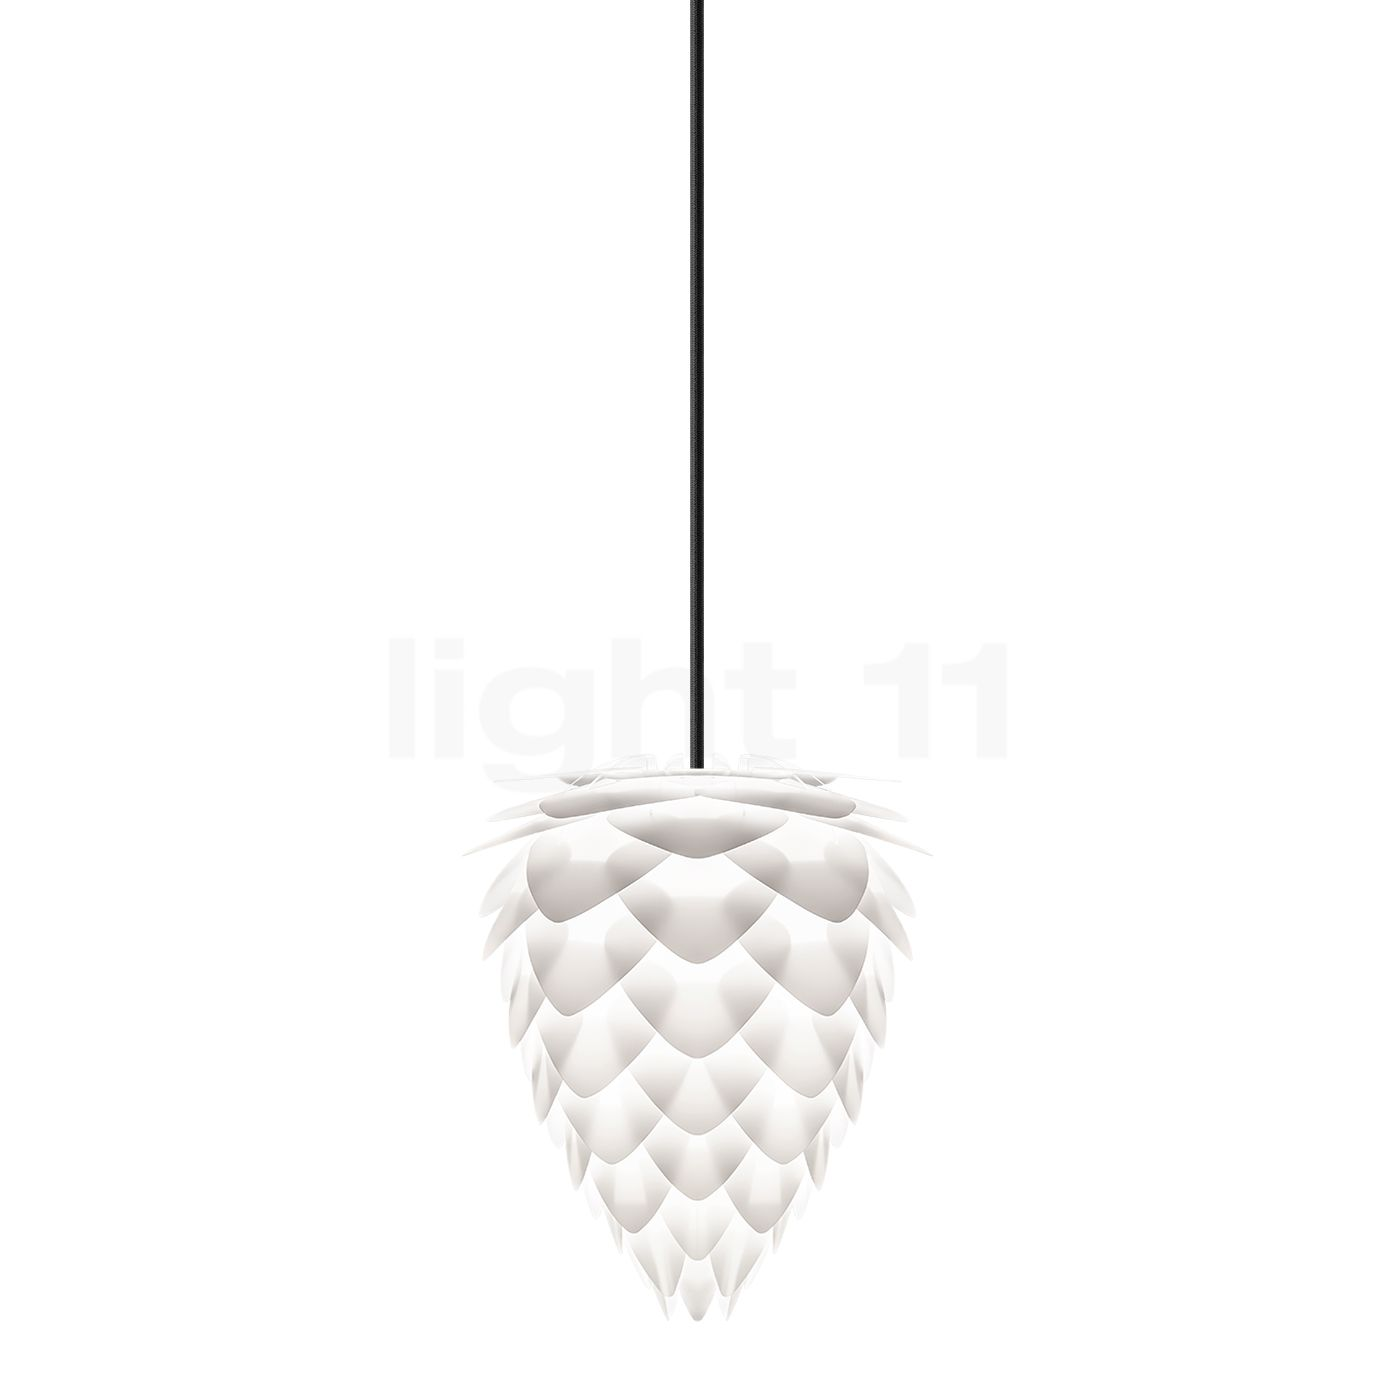 capitol inch item kichler wide everly in cfm lighting mini black and pendant chrome light clear glass shown finish